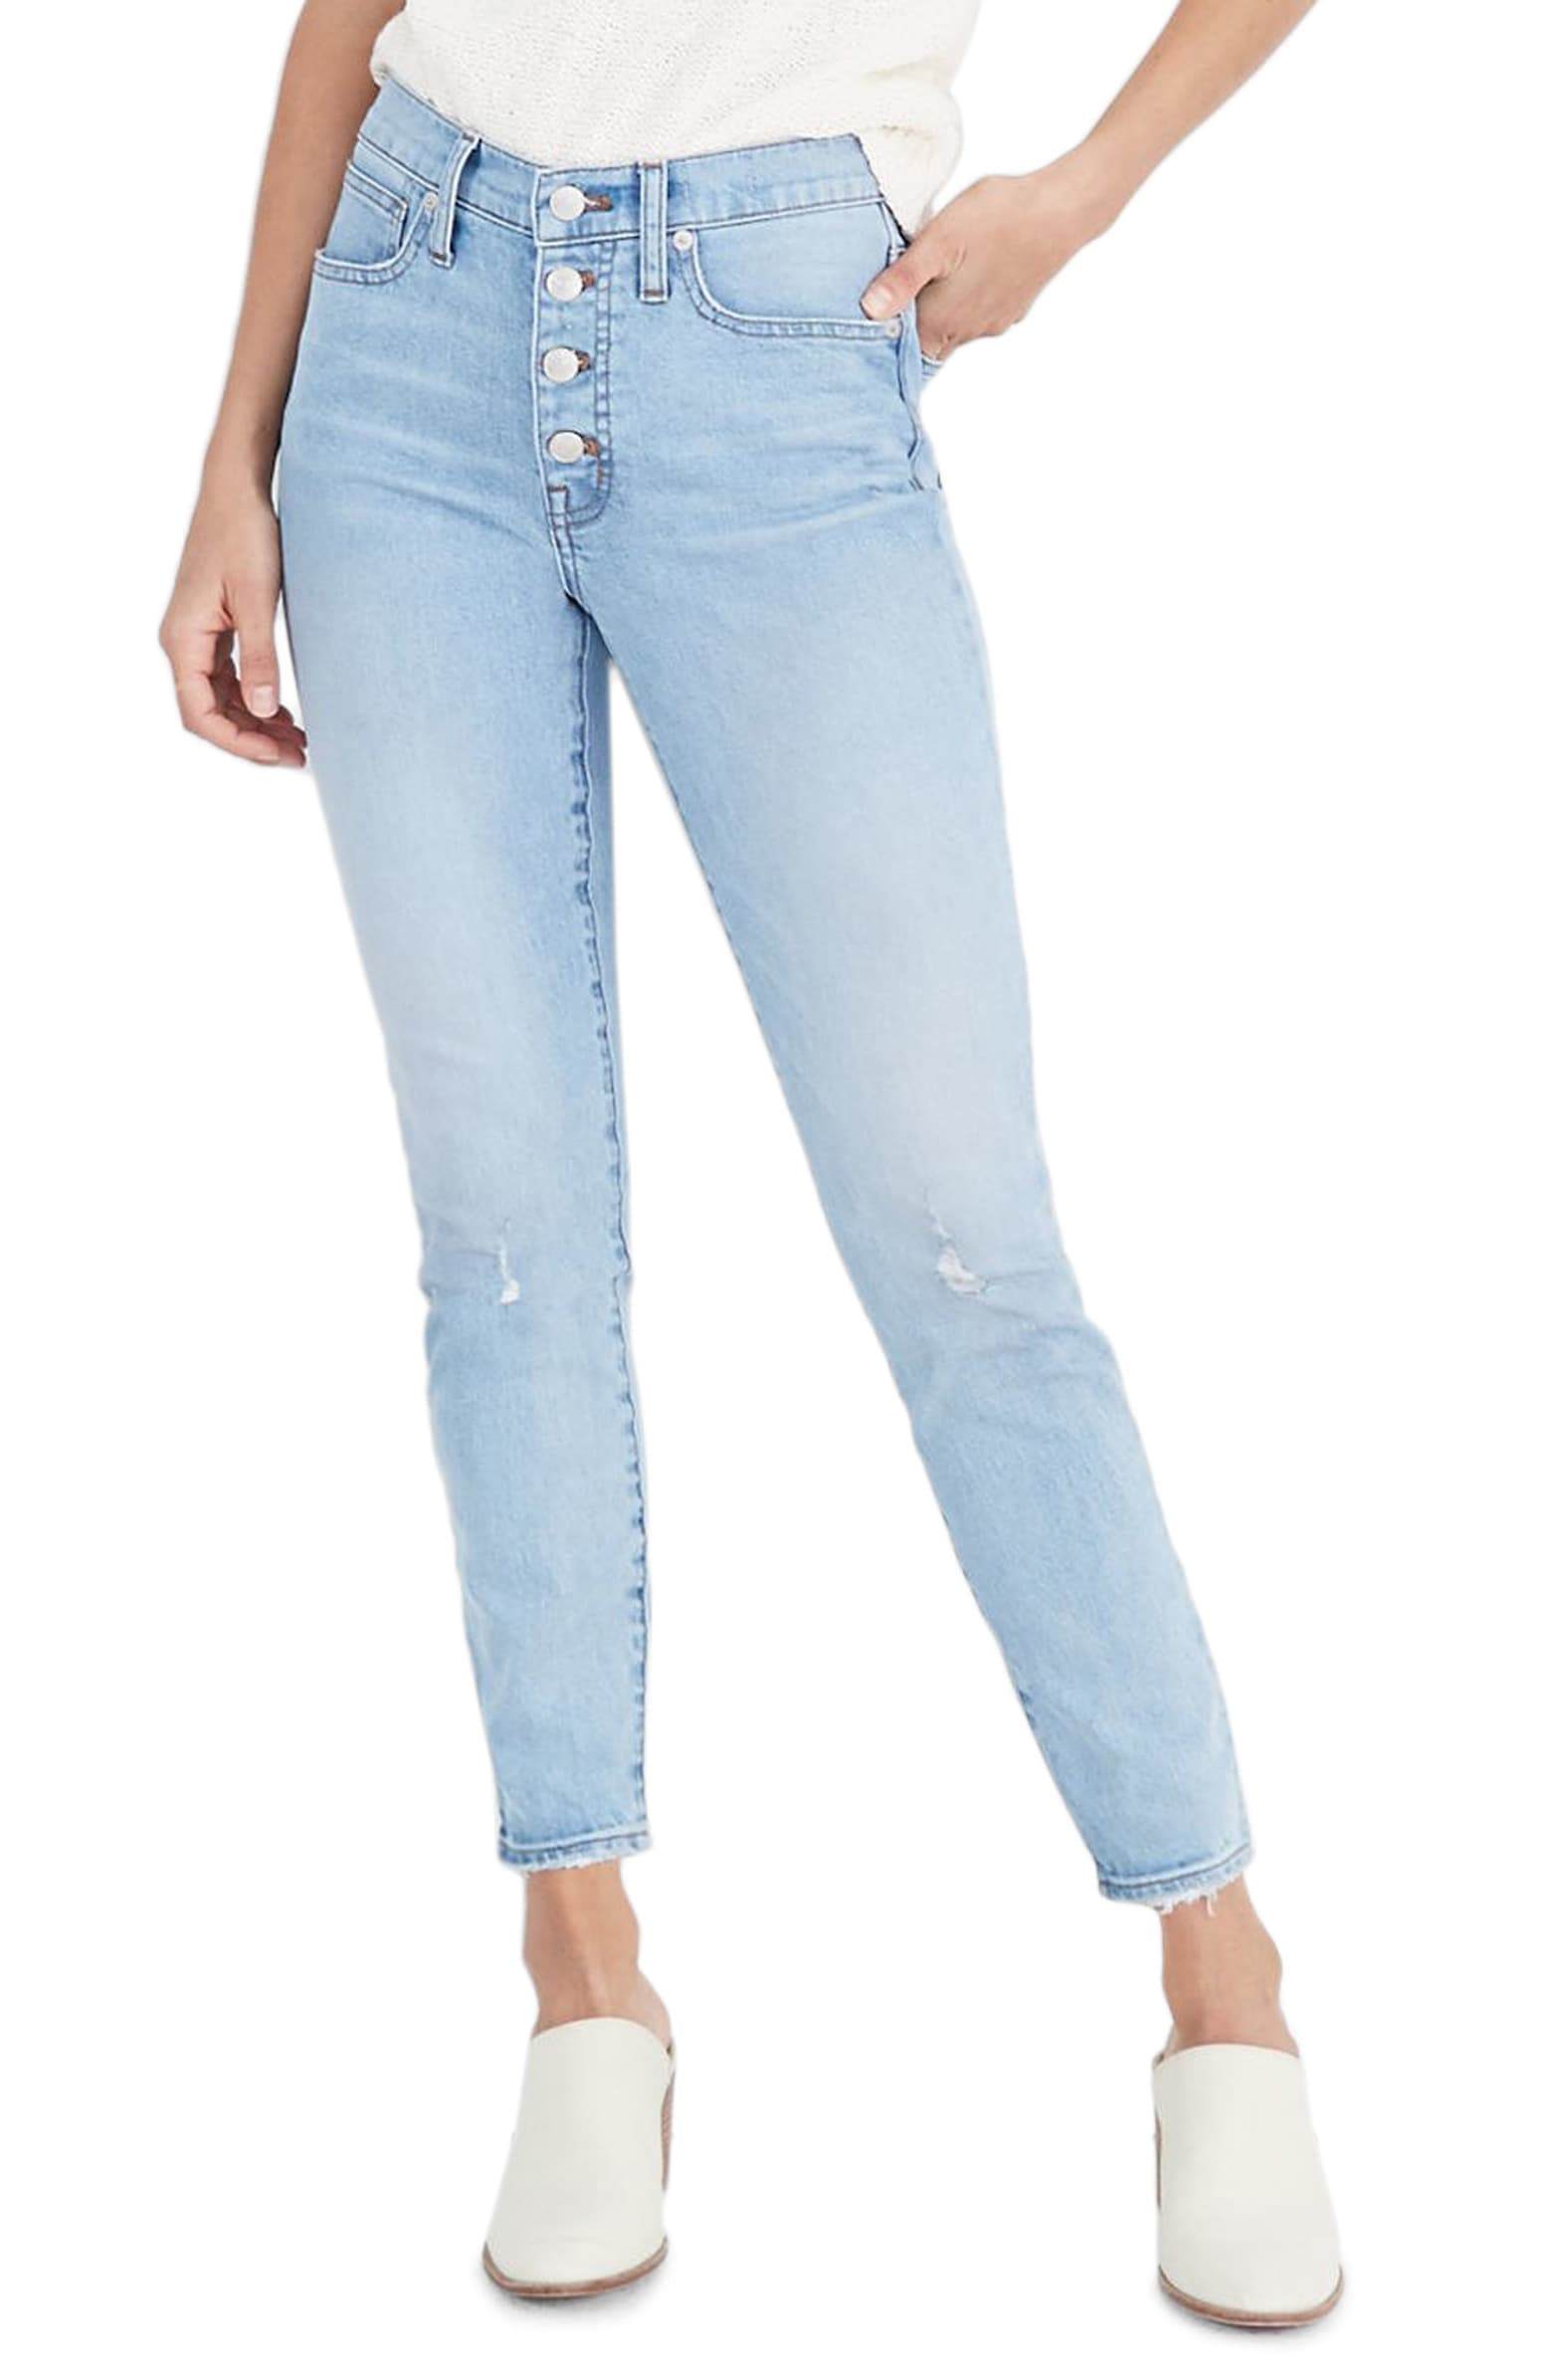 Not the exact jeans I had on the trip because unfortunately they're sold out on every website I tried, but these are a similar fit and I love the light wash!